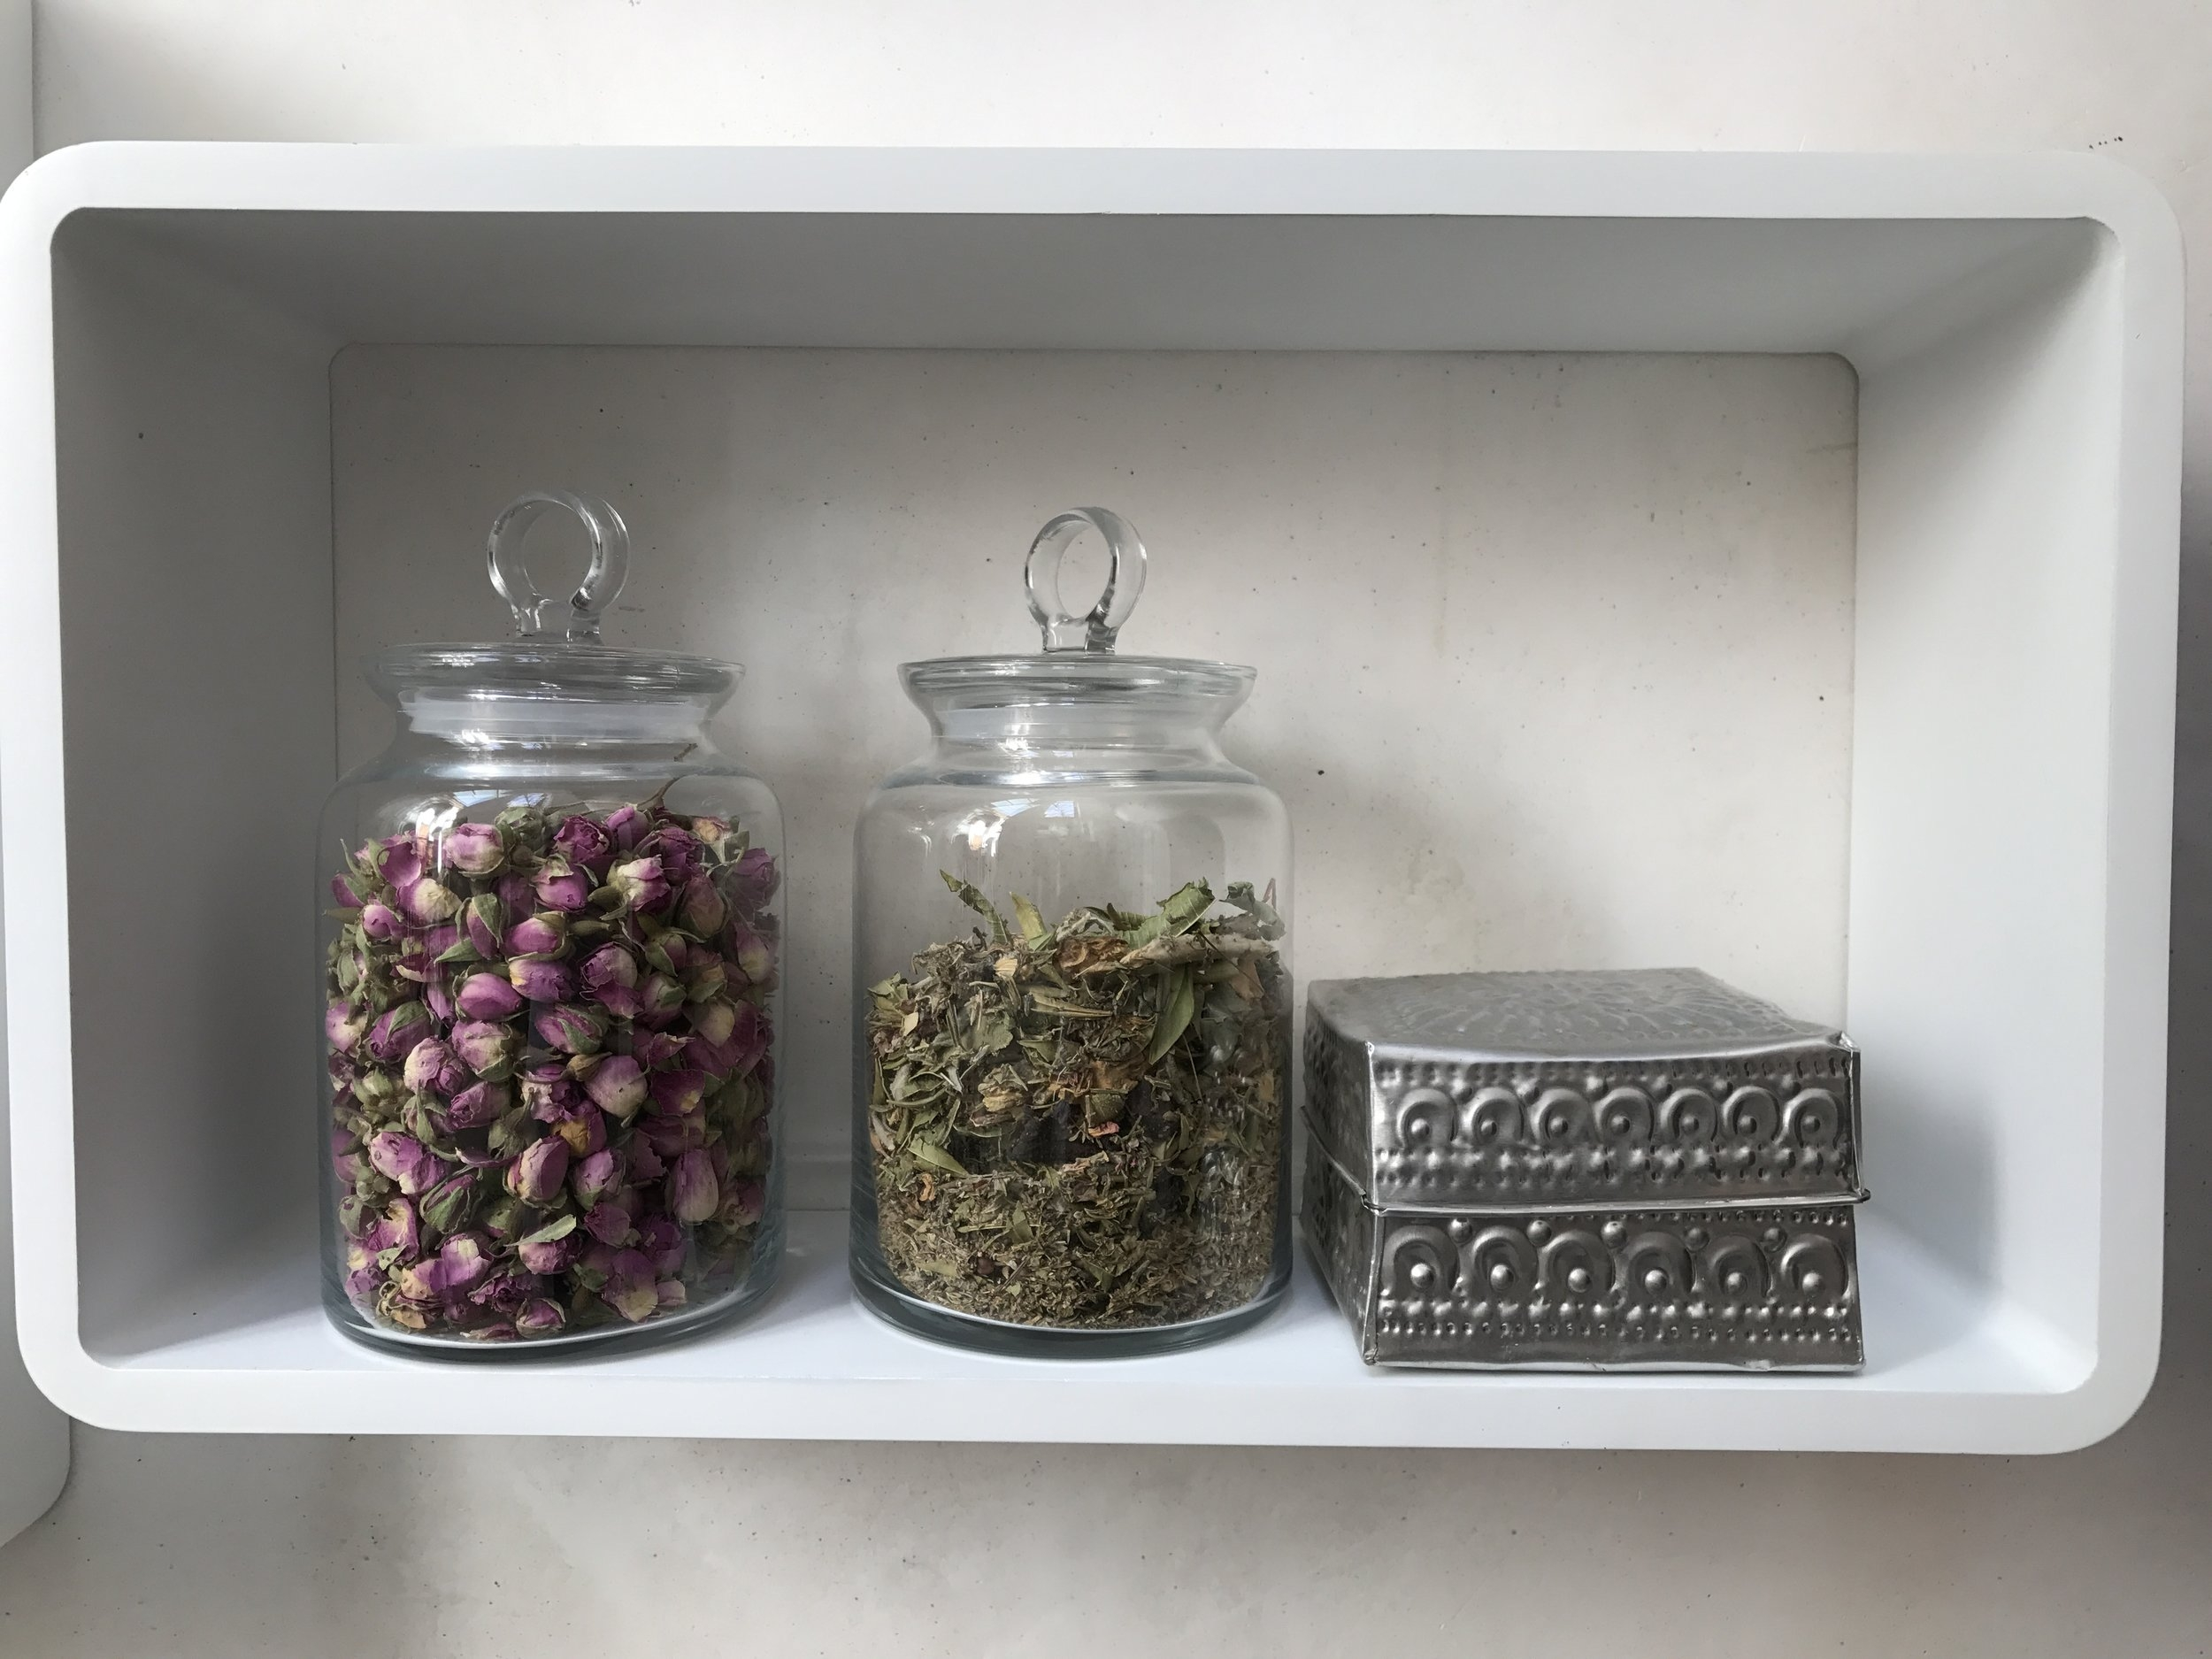 Dried Roses and Berber Tea (mix of several plants)